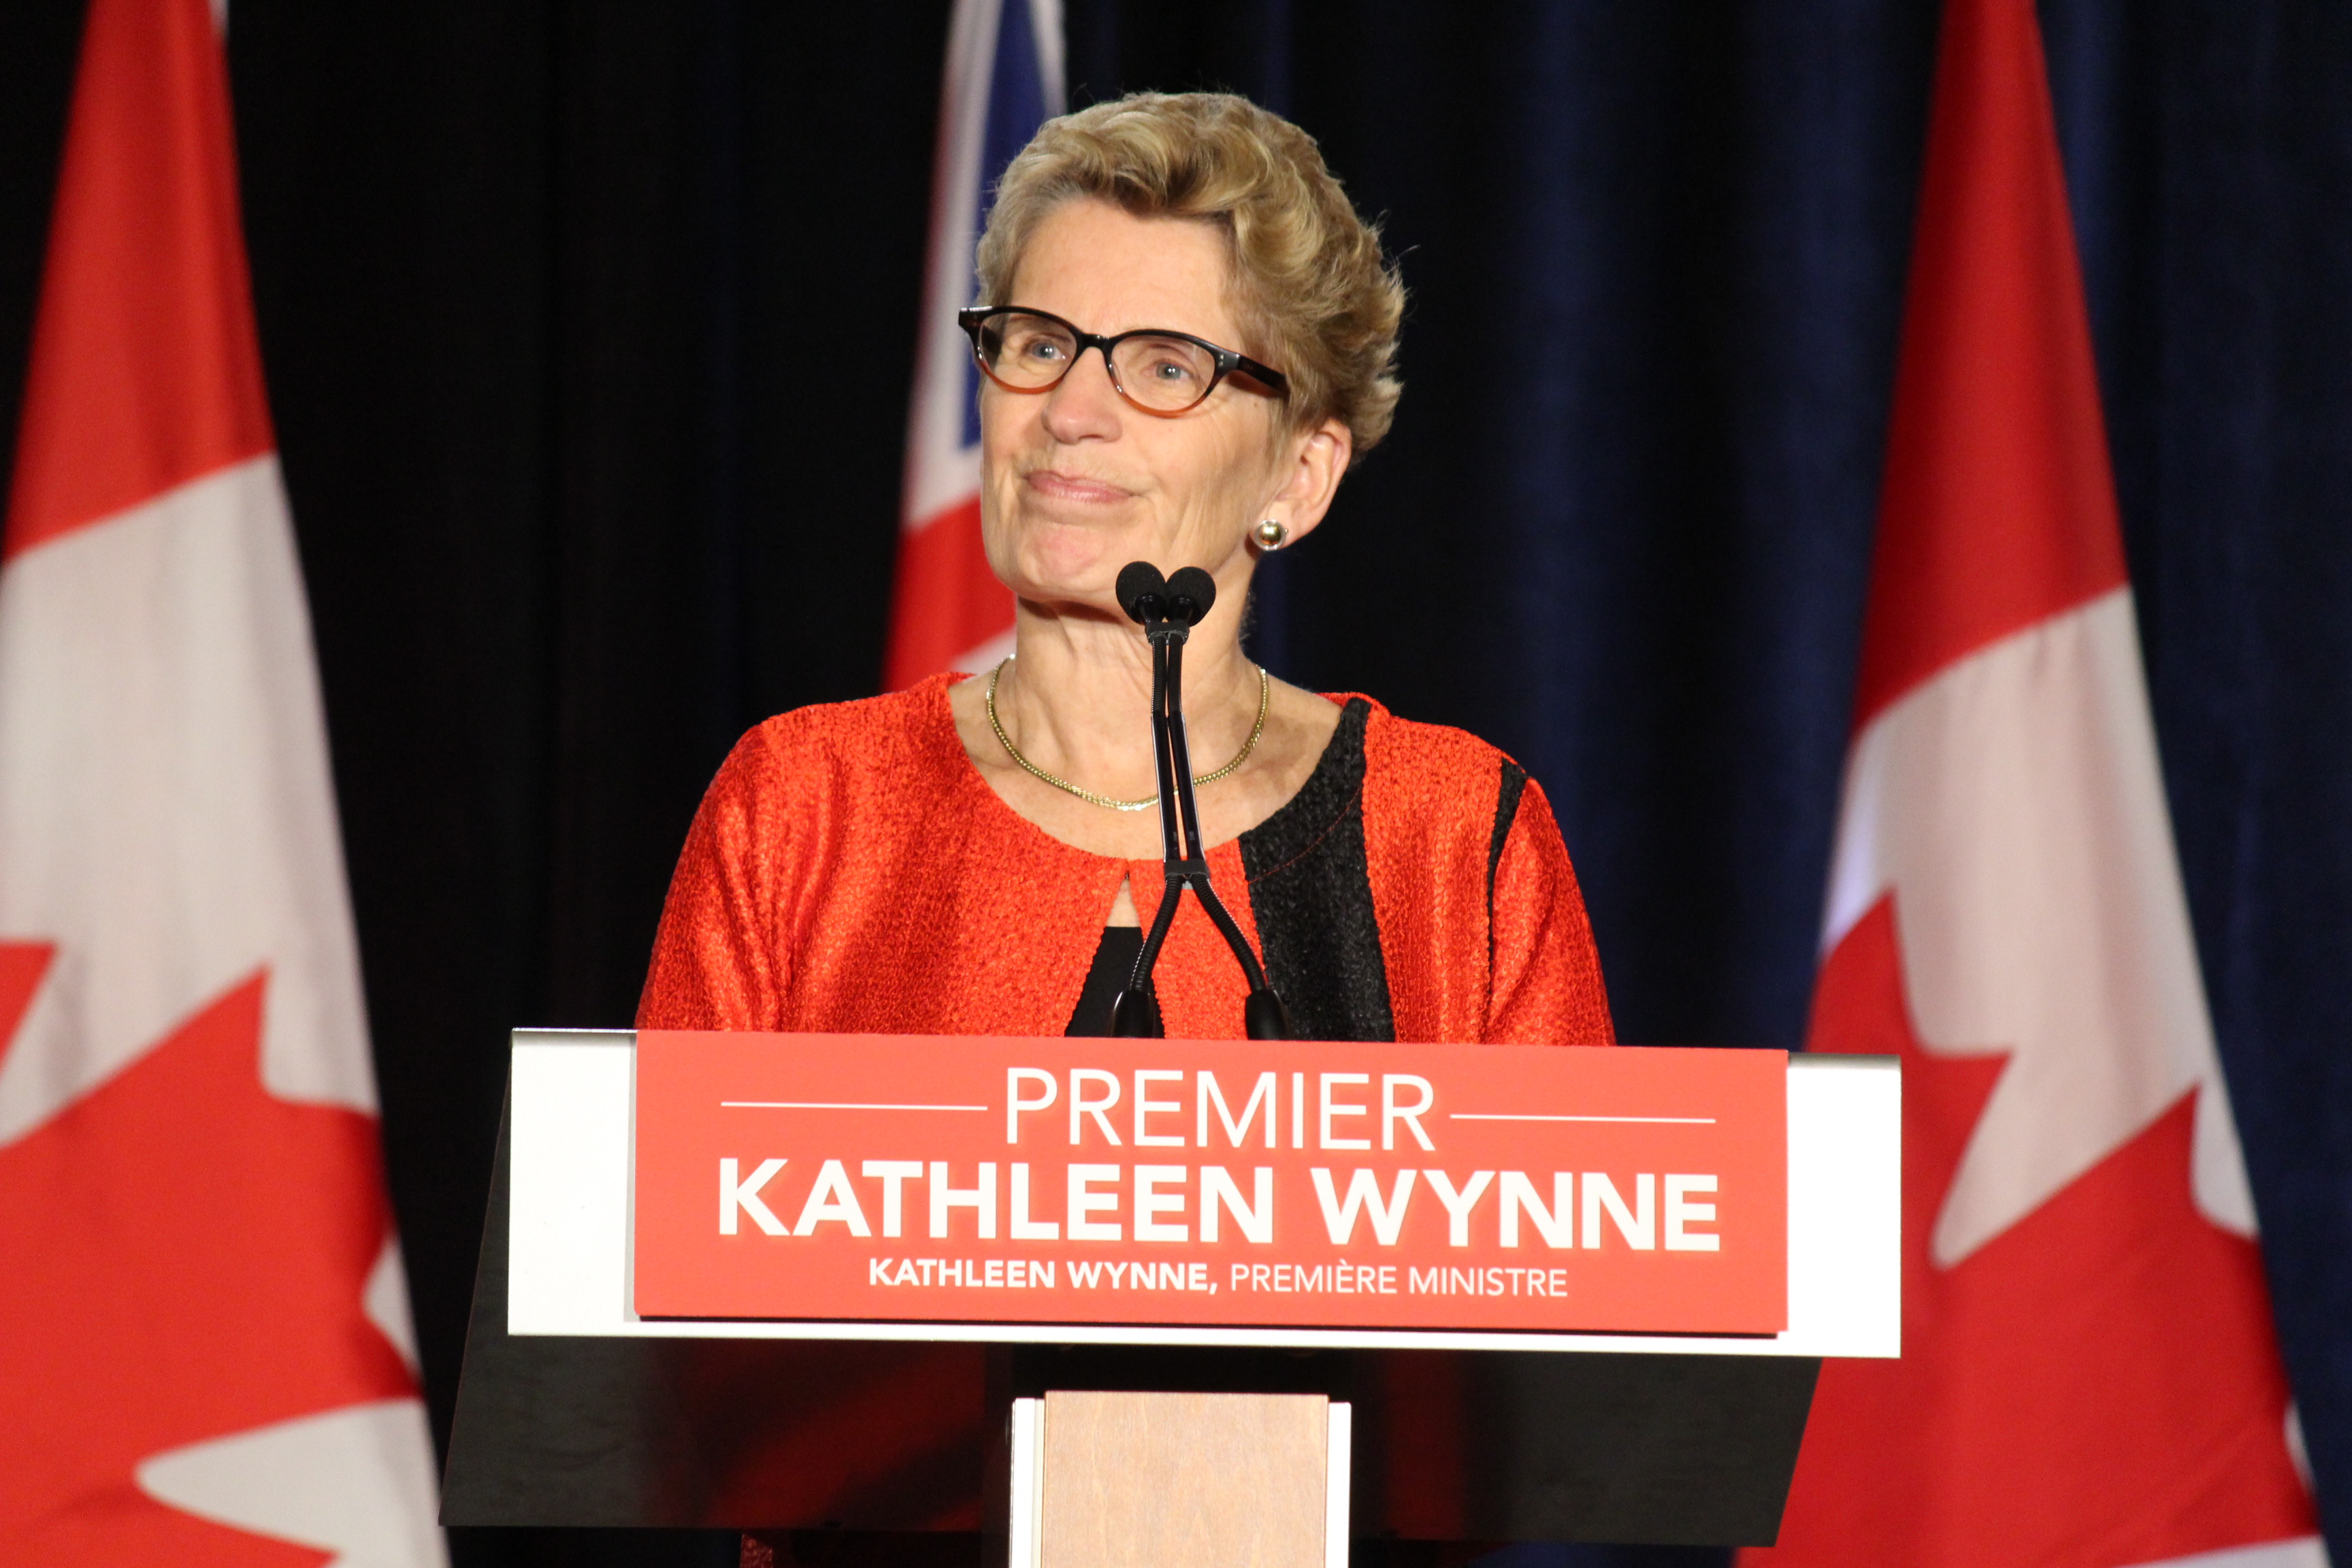 Liberal Ontario Premier Kathleen Wynne addresses Provincial Council at Caesars Windsor on October 18, 2014. (Photo by Jason Viau)